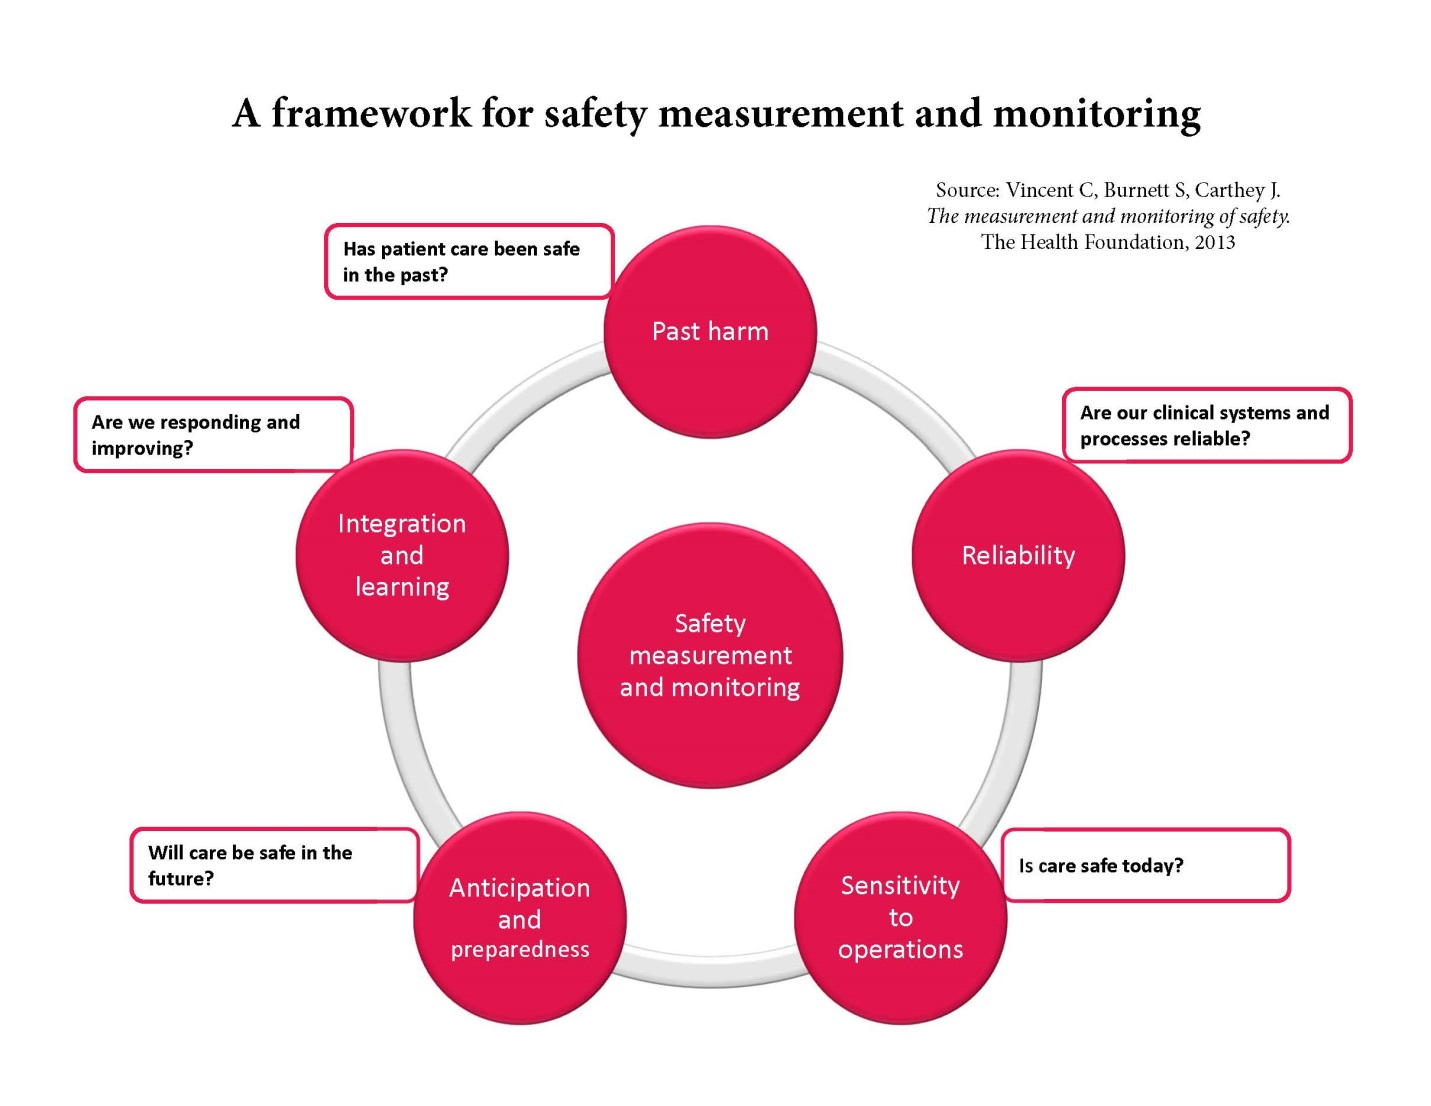 A visual Model of a framework for safety measurement andmonitoring - past harm, reliability, sensitivity to operations, anticipation and preparedness, integration and learning